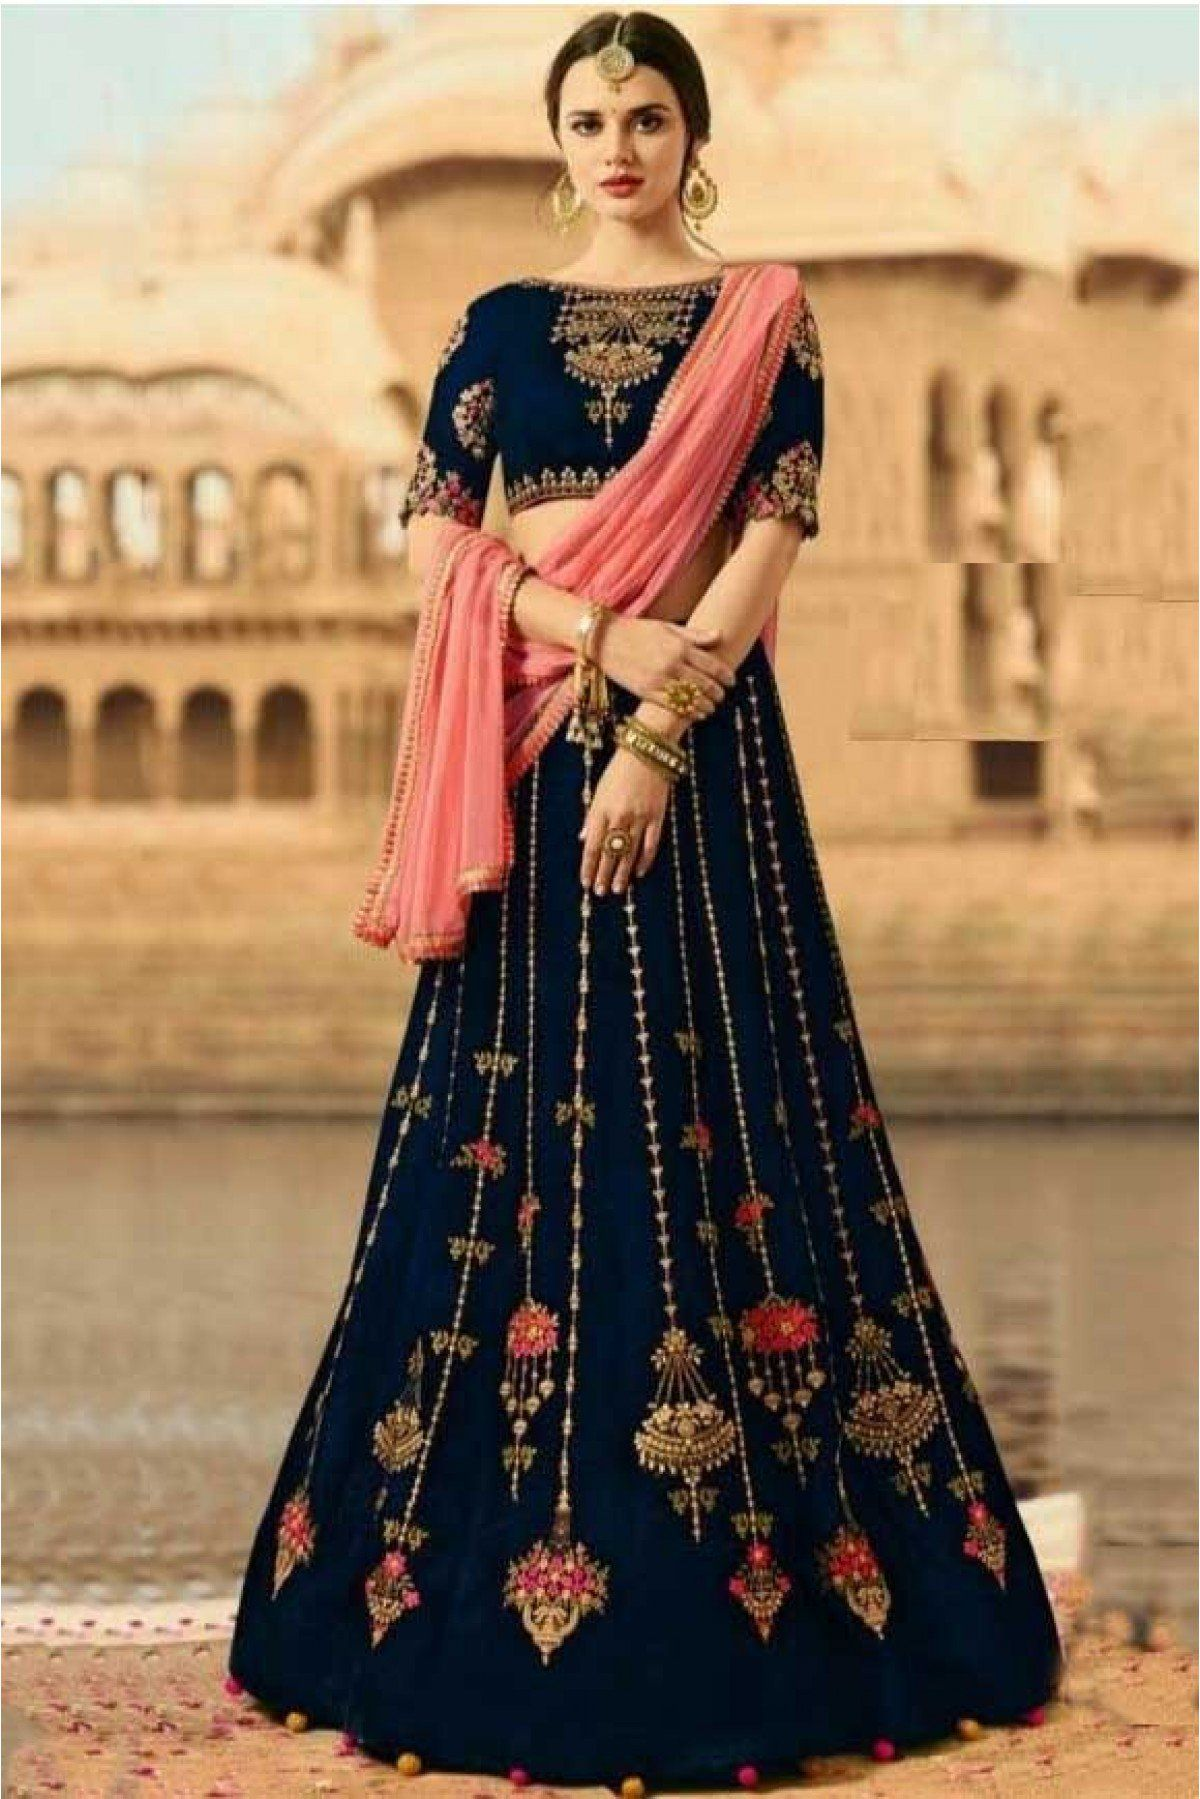 fb08a4e9ba Buy Silk Lehenga Choli In Navy Blue Colour @ ninecolours.com. Free Shipping  in India available!